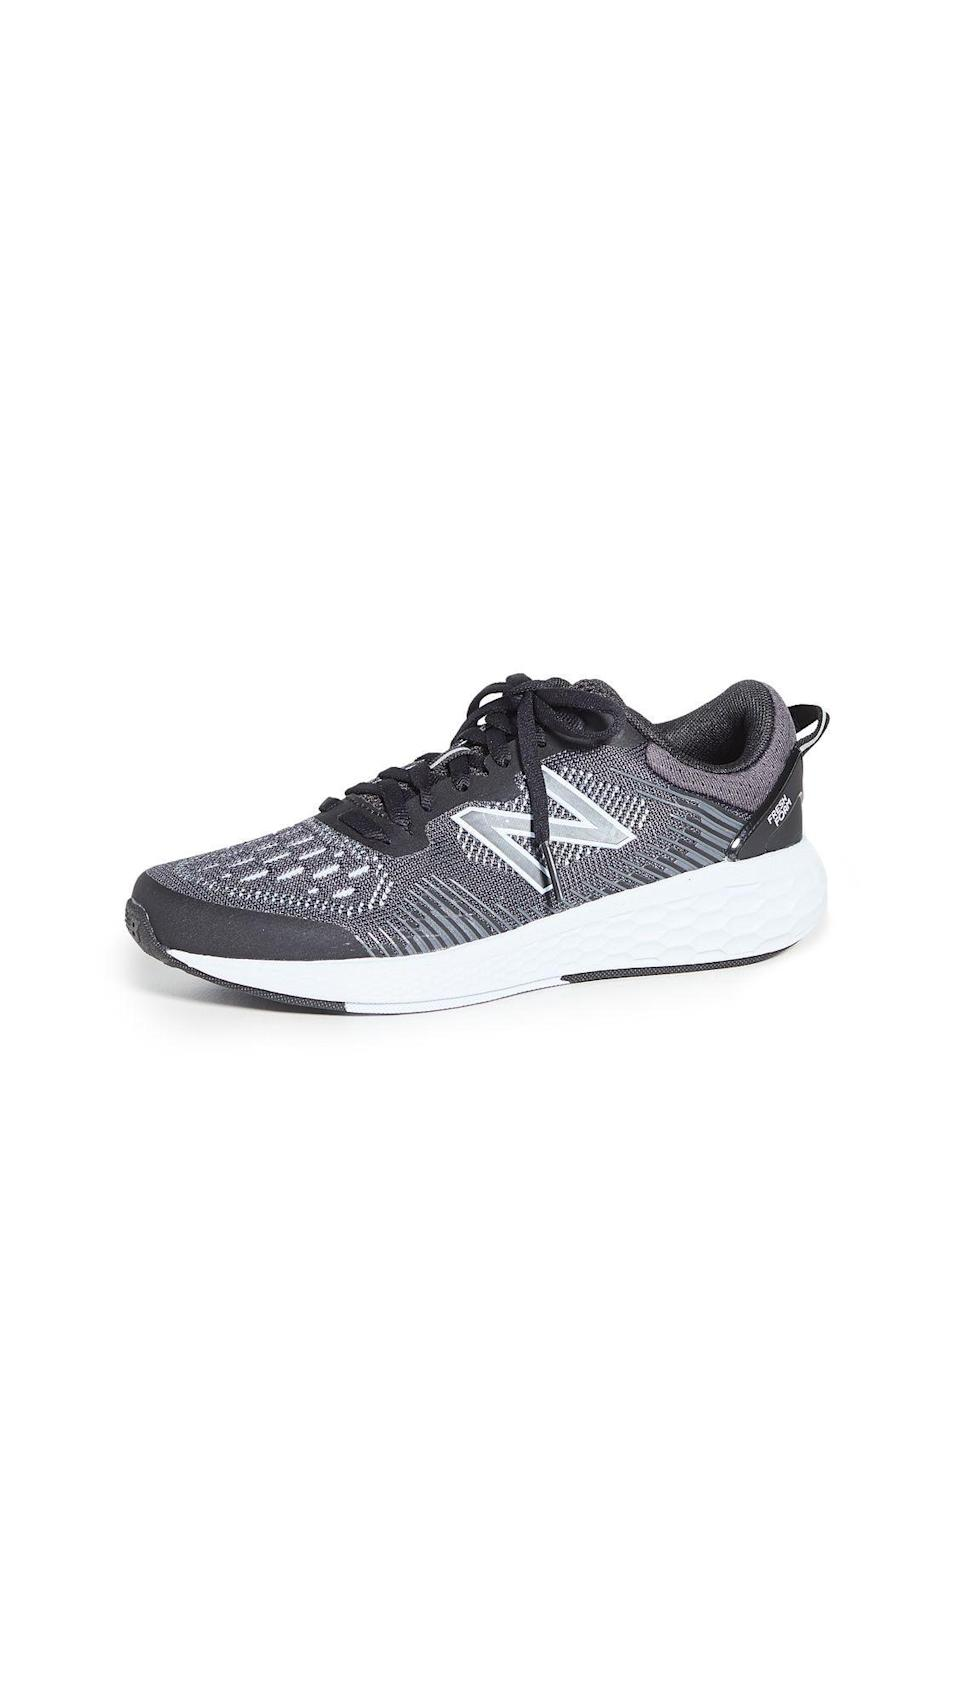 """<p><strong>New Balance</strong></p><p>shopbop.com</p><p><a href=""""https://go.redirectingat.com?id=74968X1596630&url=https%3A%2F%2Fwww.shopbop.com%2Ffresh-foam-cross-sneaker-new%2Fvp%2Fv%3D1%2F1527312927.htm&sref=https%3A%2F%2Fwww.harpersbazaar.com%2Ffashion%2Ftrends%2Fg34632594%2Fshopbop-holiday-sale%2F"""" rel=""""nofollow noopener"""" target=""""_blank"""" data-ylk=""""slk:Shop Now"""" class=""""link rapid-noclick-resp"""">Shop Now</a></p><p><strong><del>$120</del></strong><strong> $84 (34% off)</strong></p><p>Streaming HIIT workouts at home? If you need a new pair of sneakers to help keep you balanced while doing burpies, don't miss your chance to snatch this comfy pair from New Balance. </p>"""